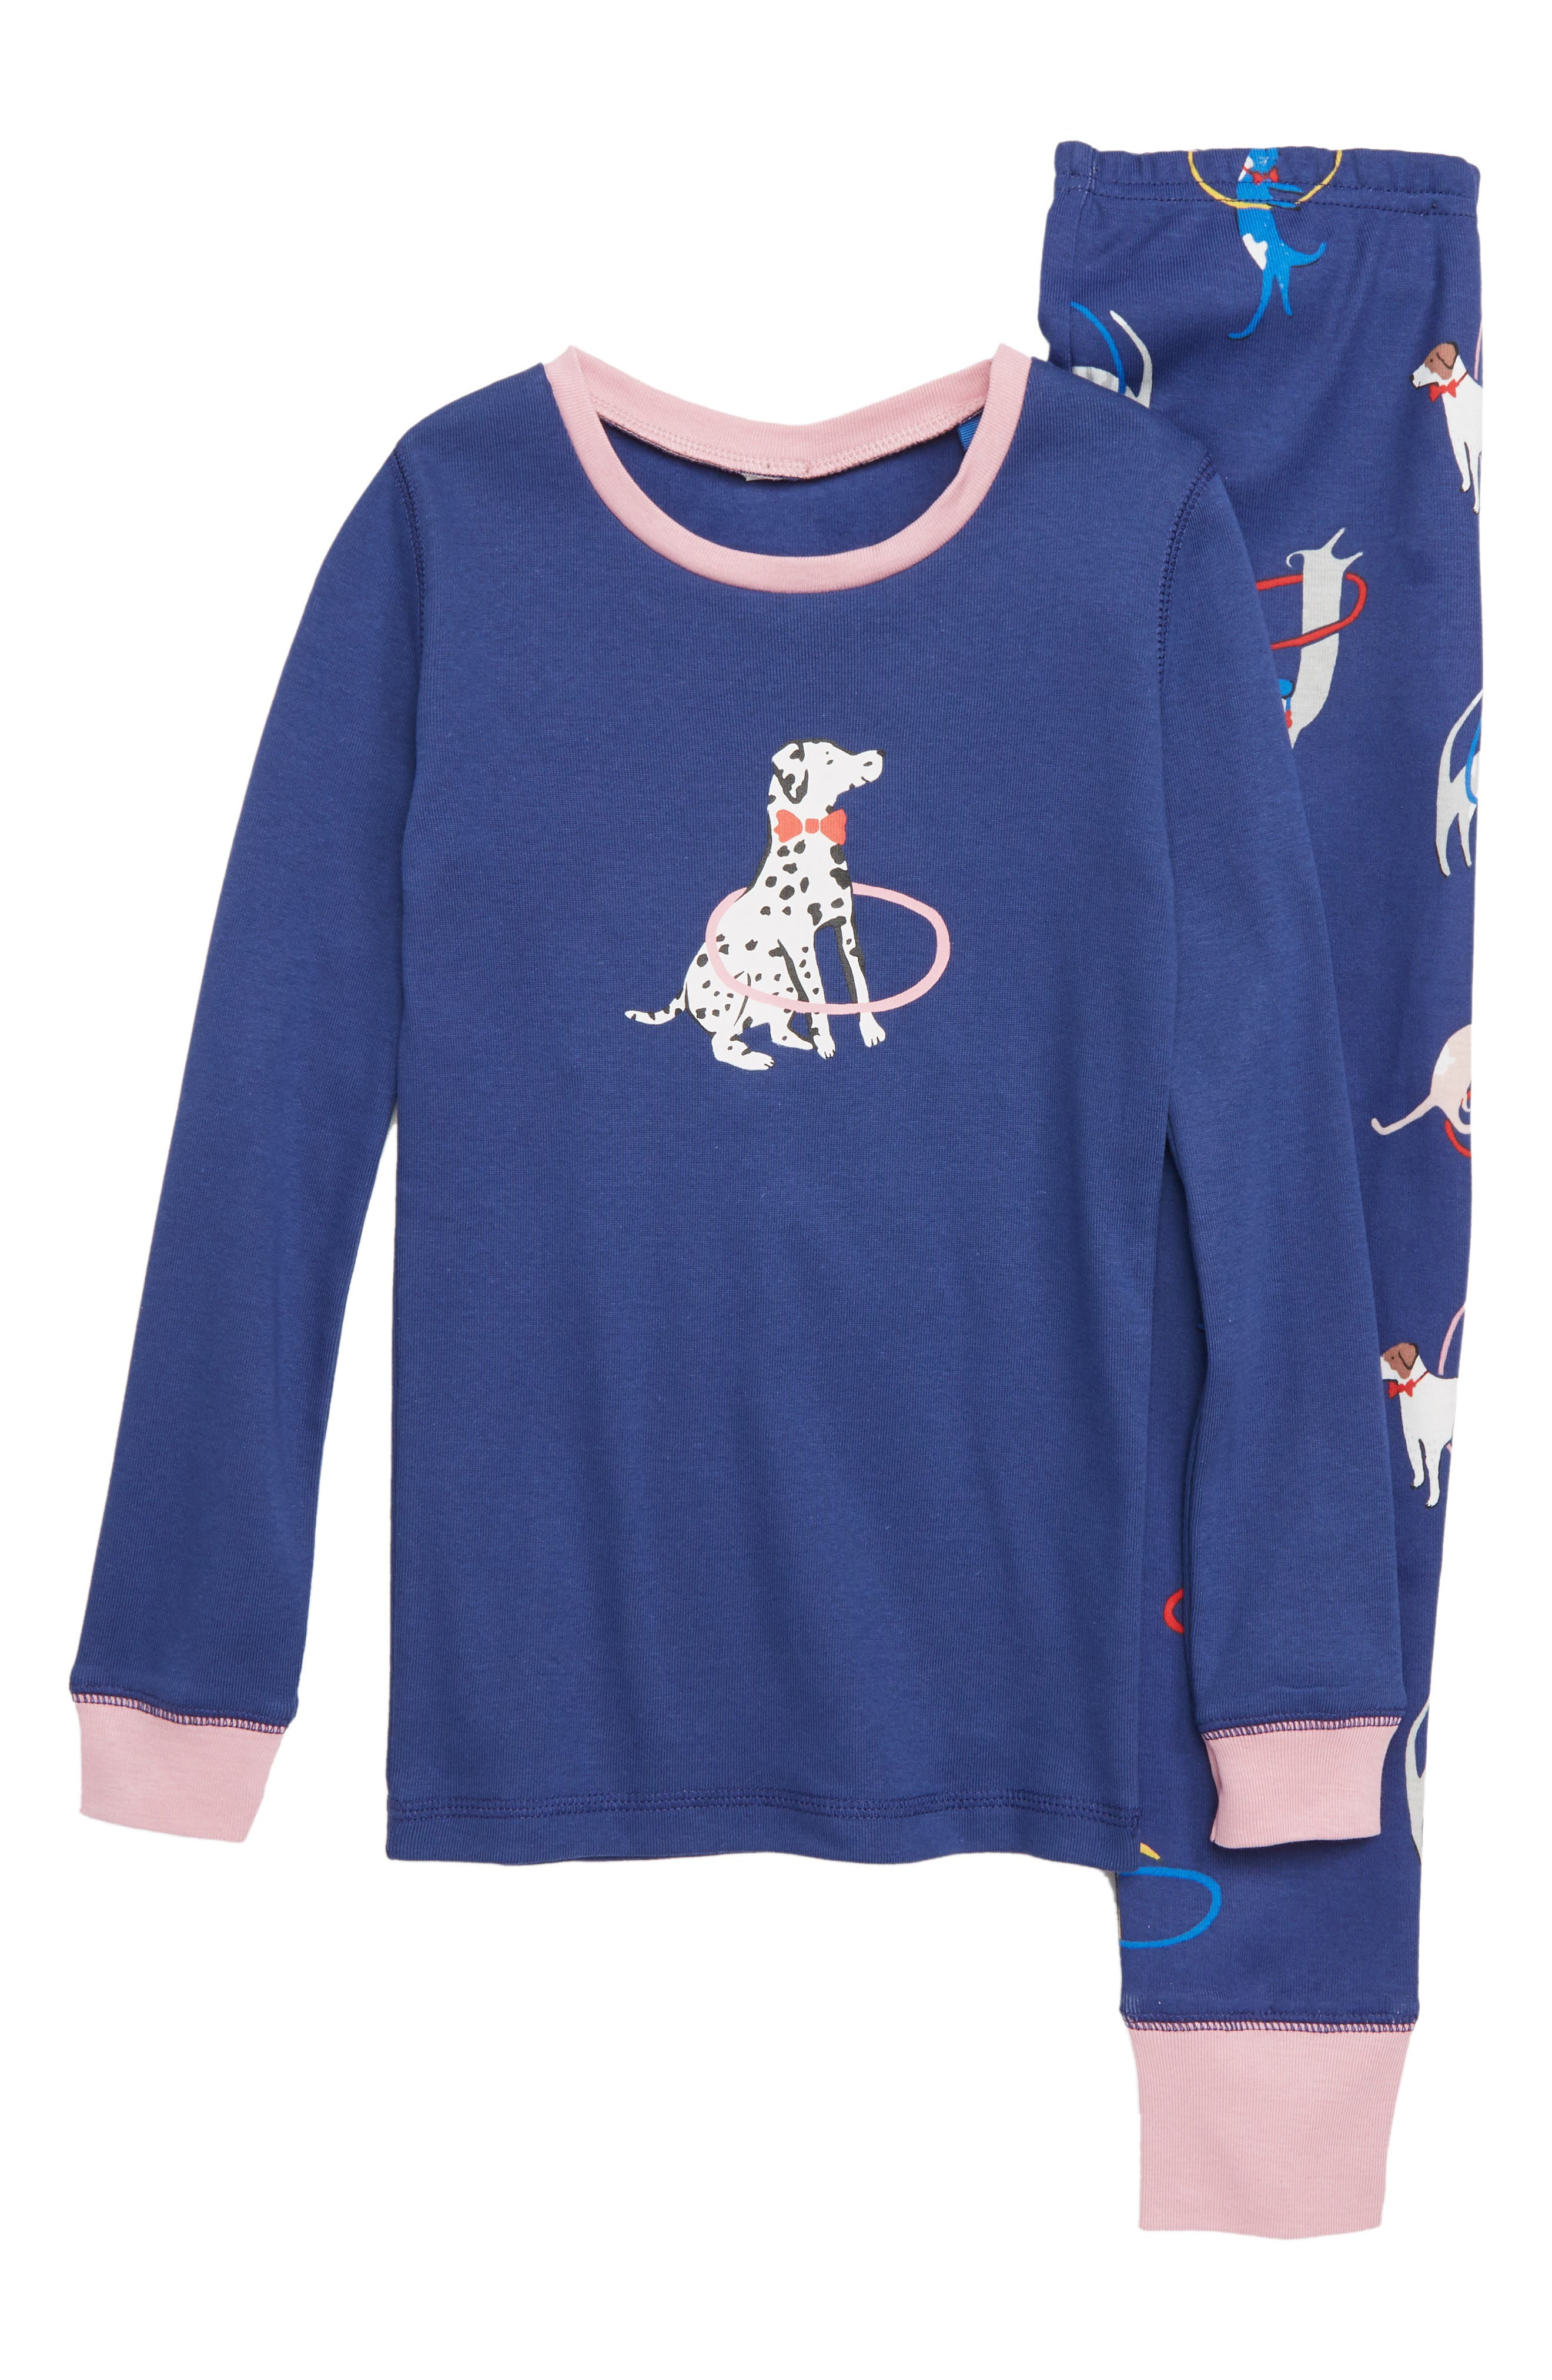 Fitted Cosy Long John Pajamas,                             Main thumbnail 1, color,                             NAVY STARBOARD BLUE